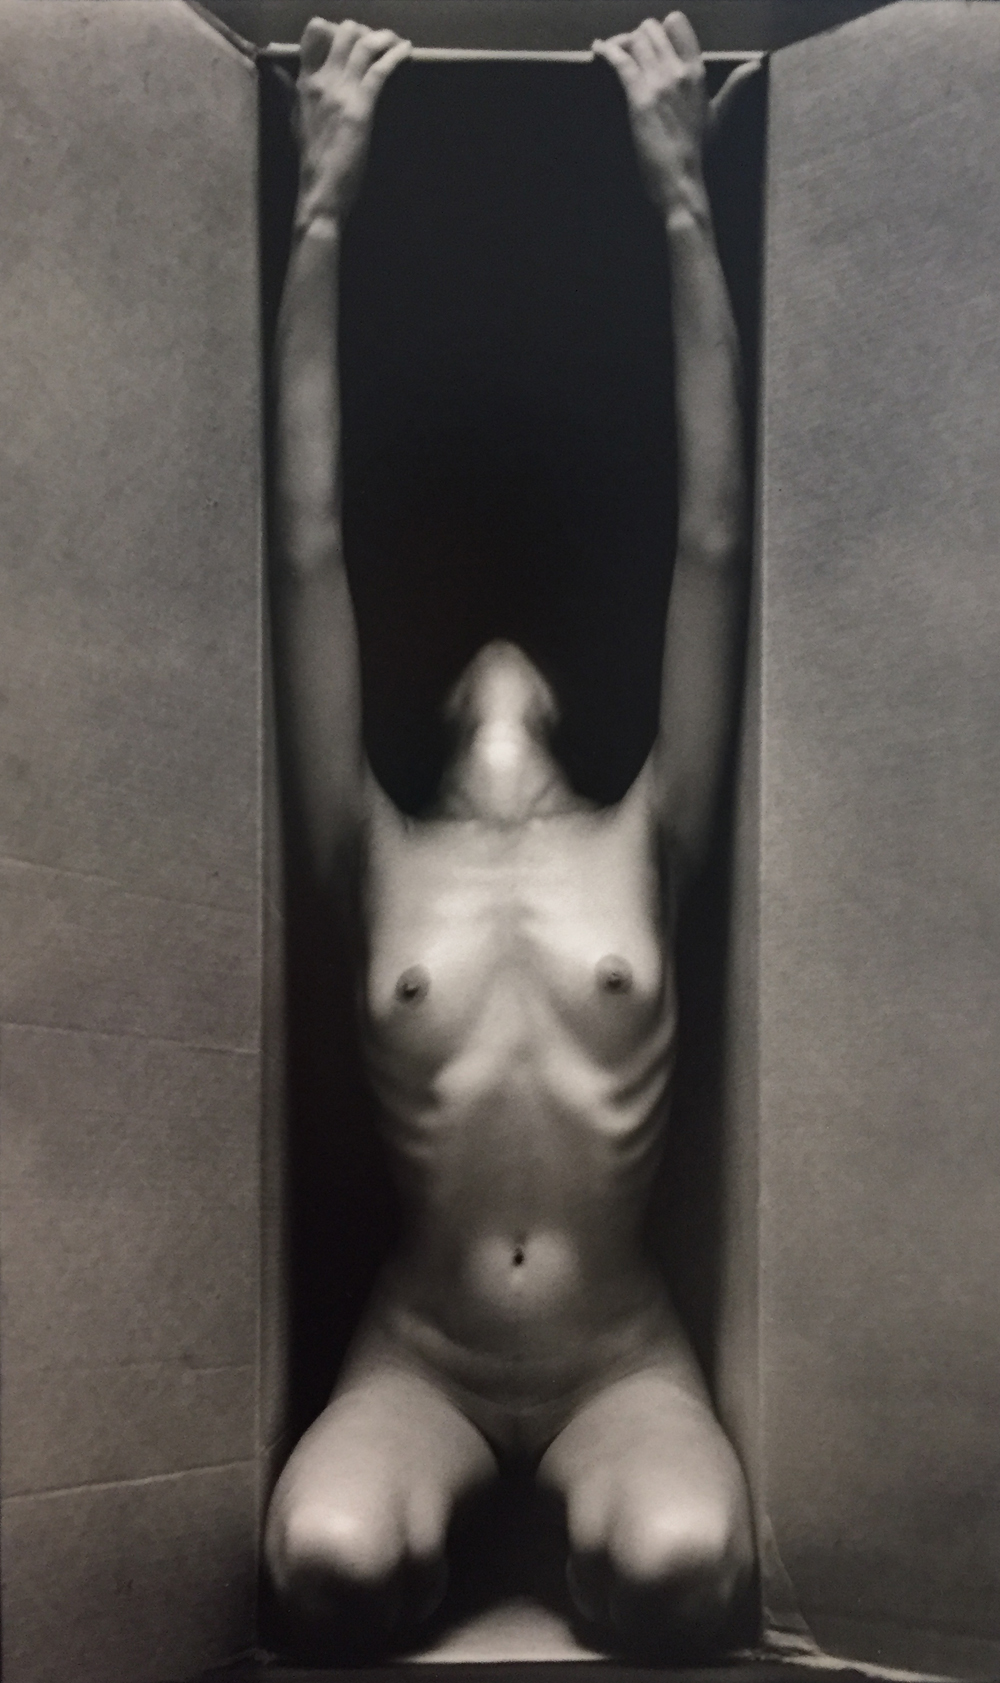 Ruth Bernhard, In the Box – Vertical, 1962, toned gelatin silver print, 13.5 x 8.5 inches, price on request